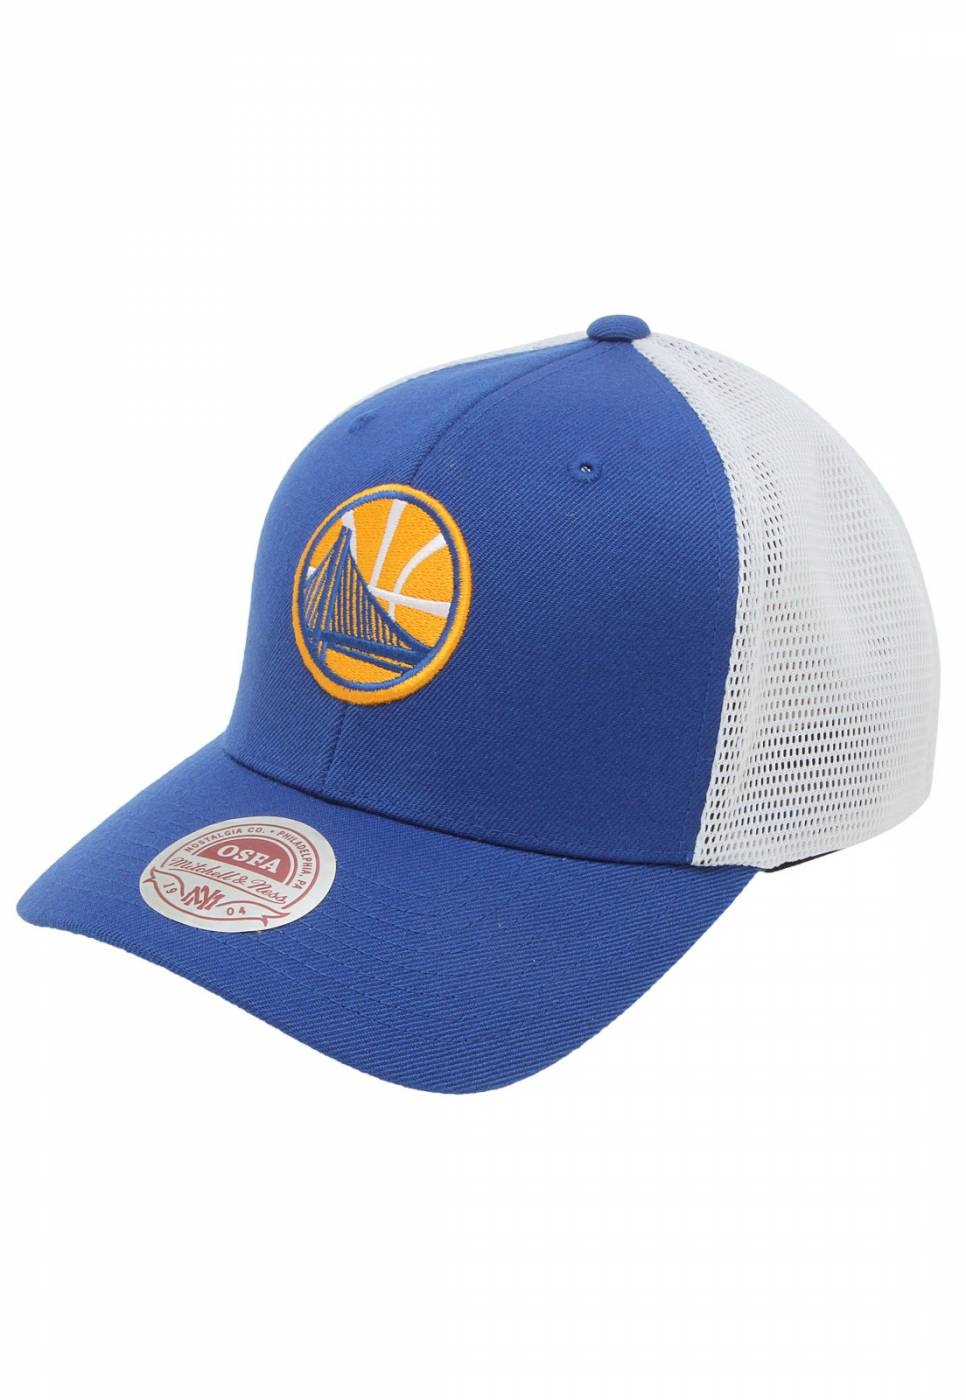 Boné aba curva Golden State Warriors Mitchell e Ness